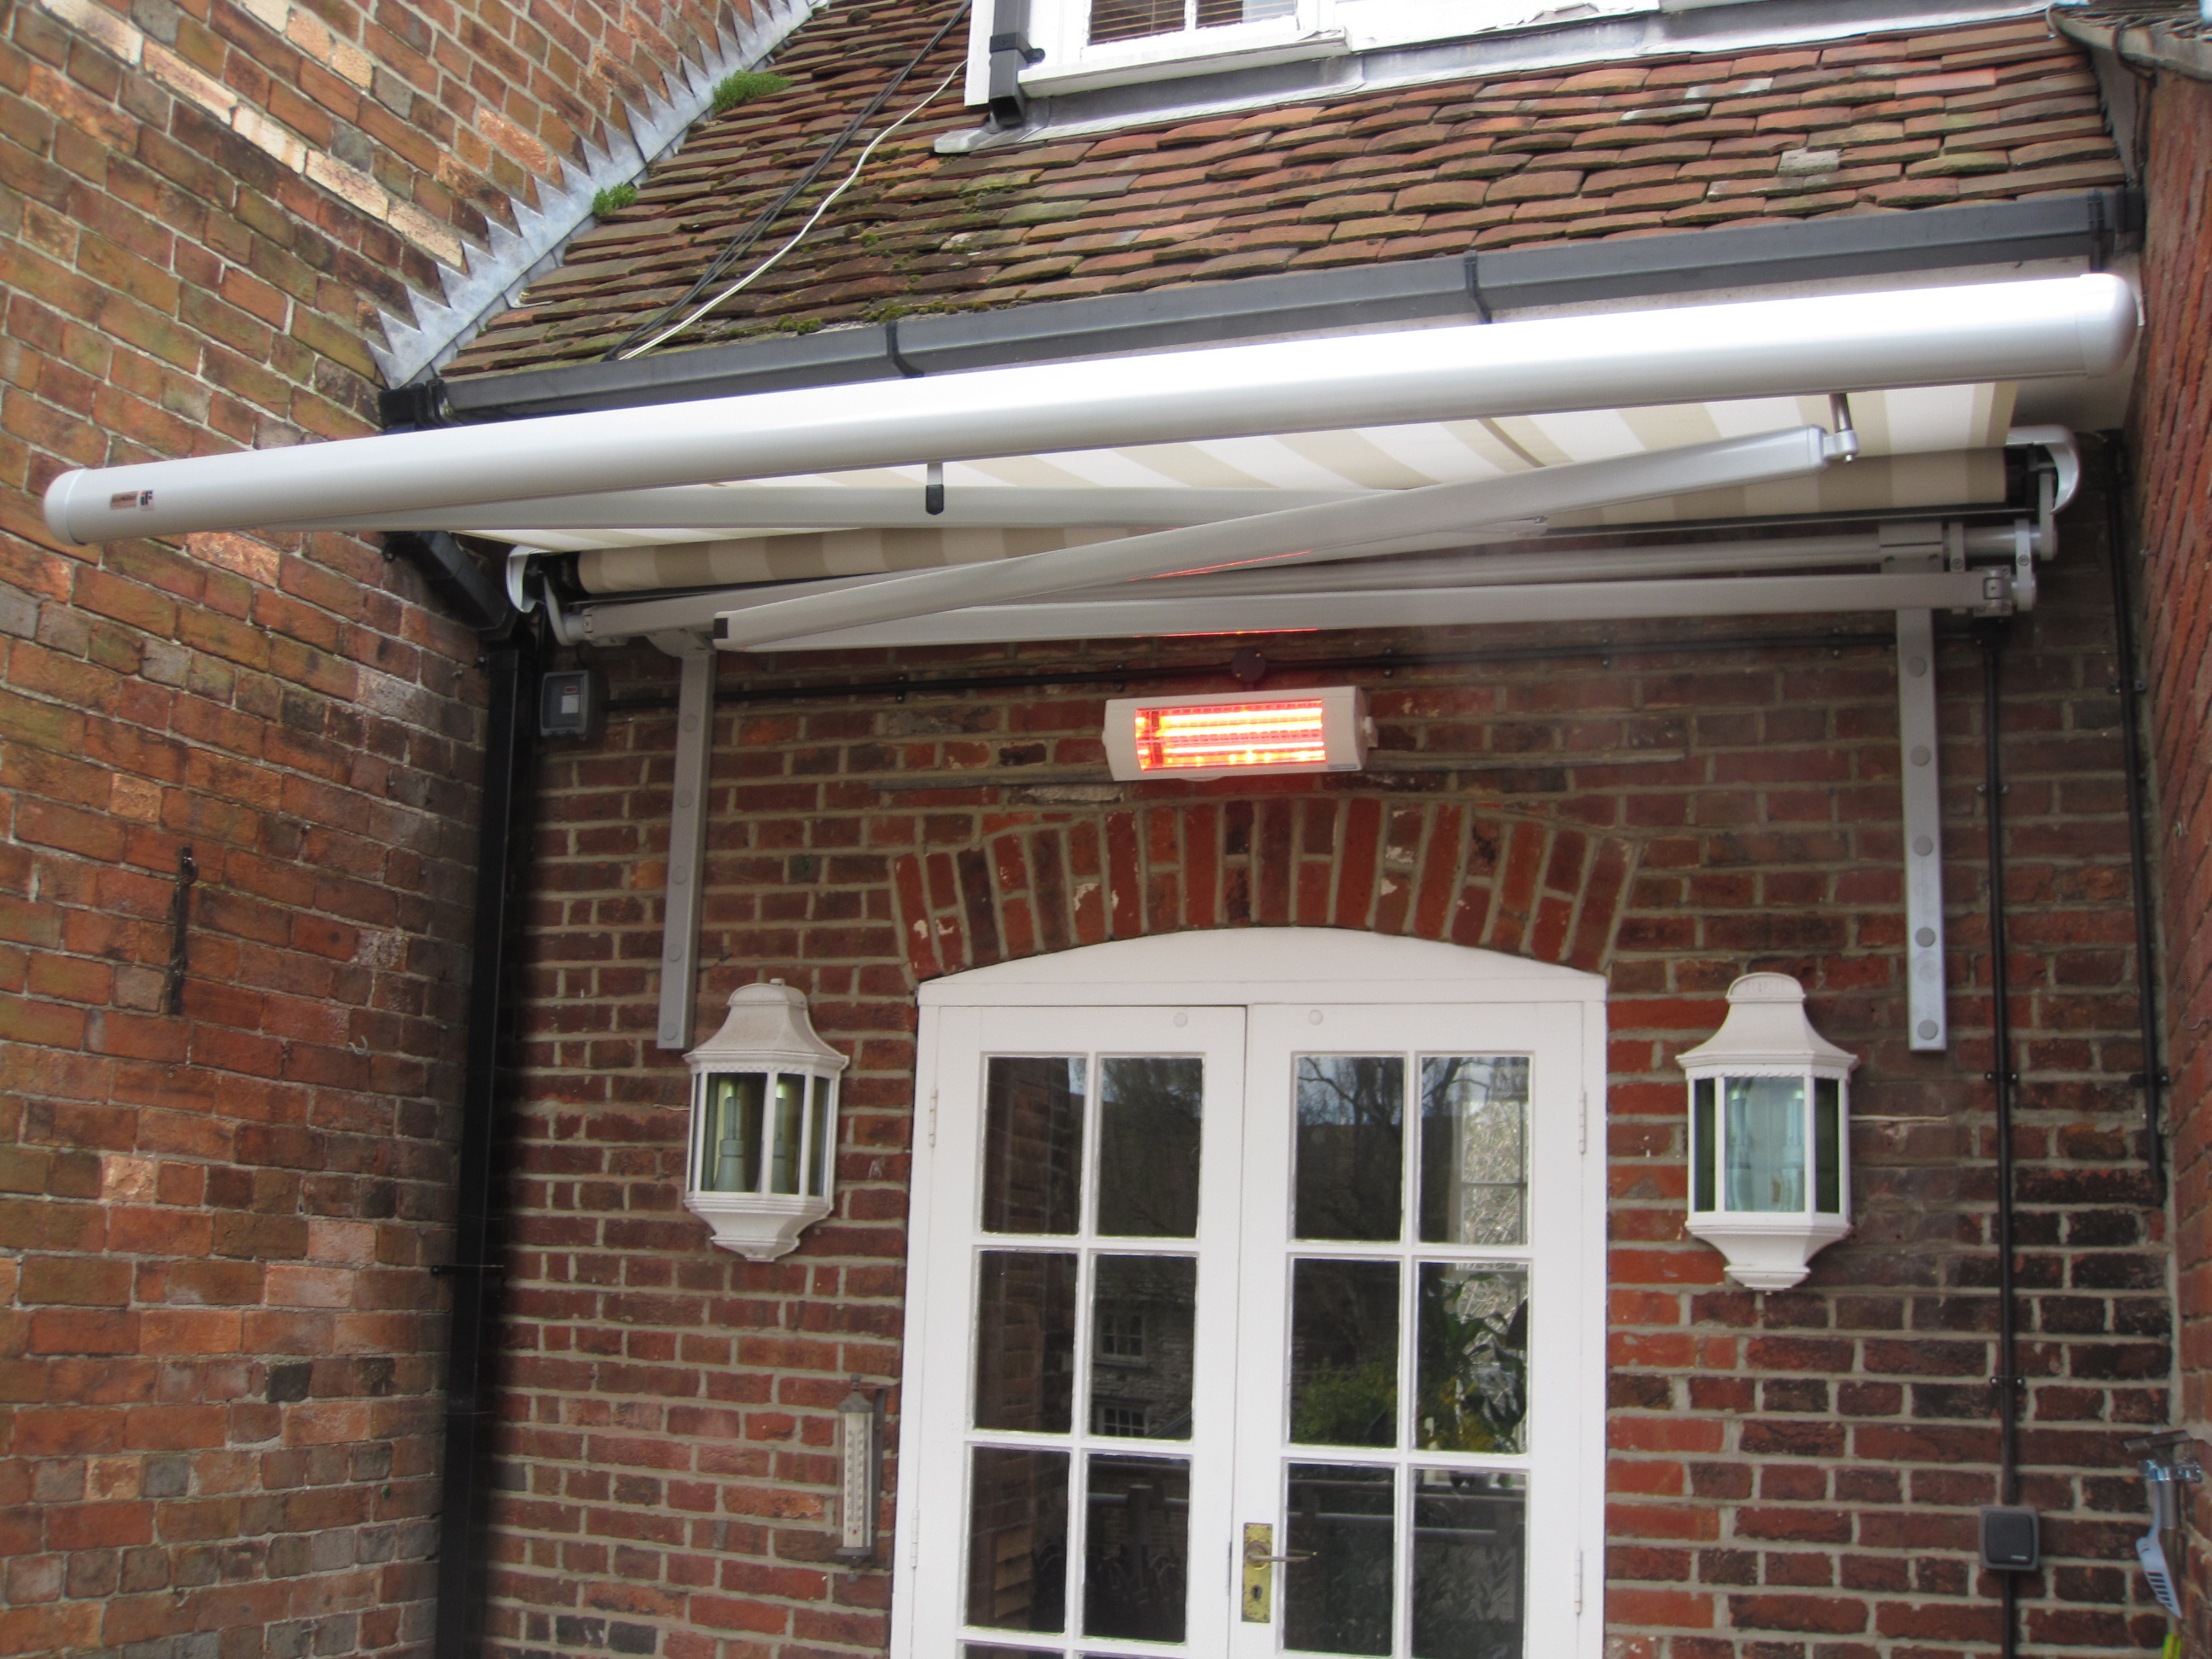 Electric Awning On PooleDorset First Floor Deck